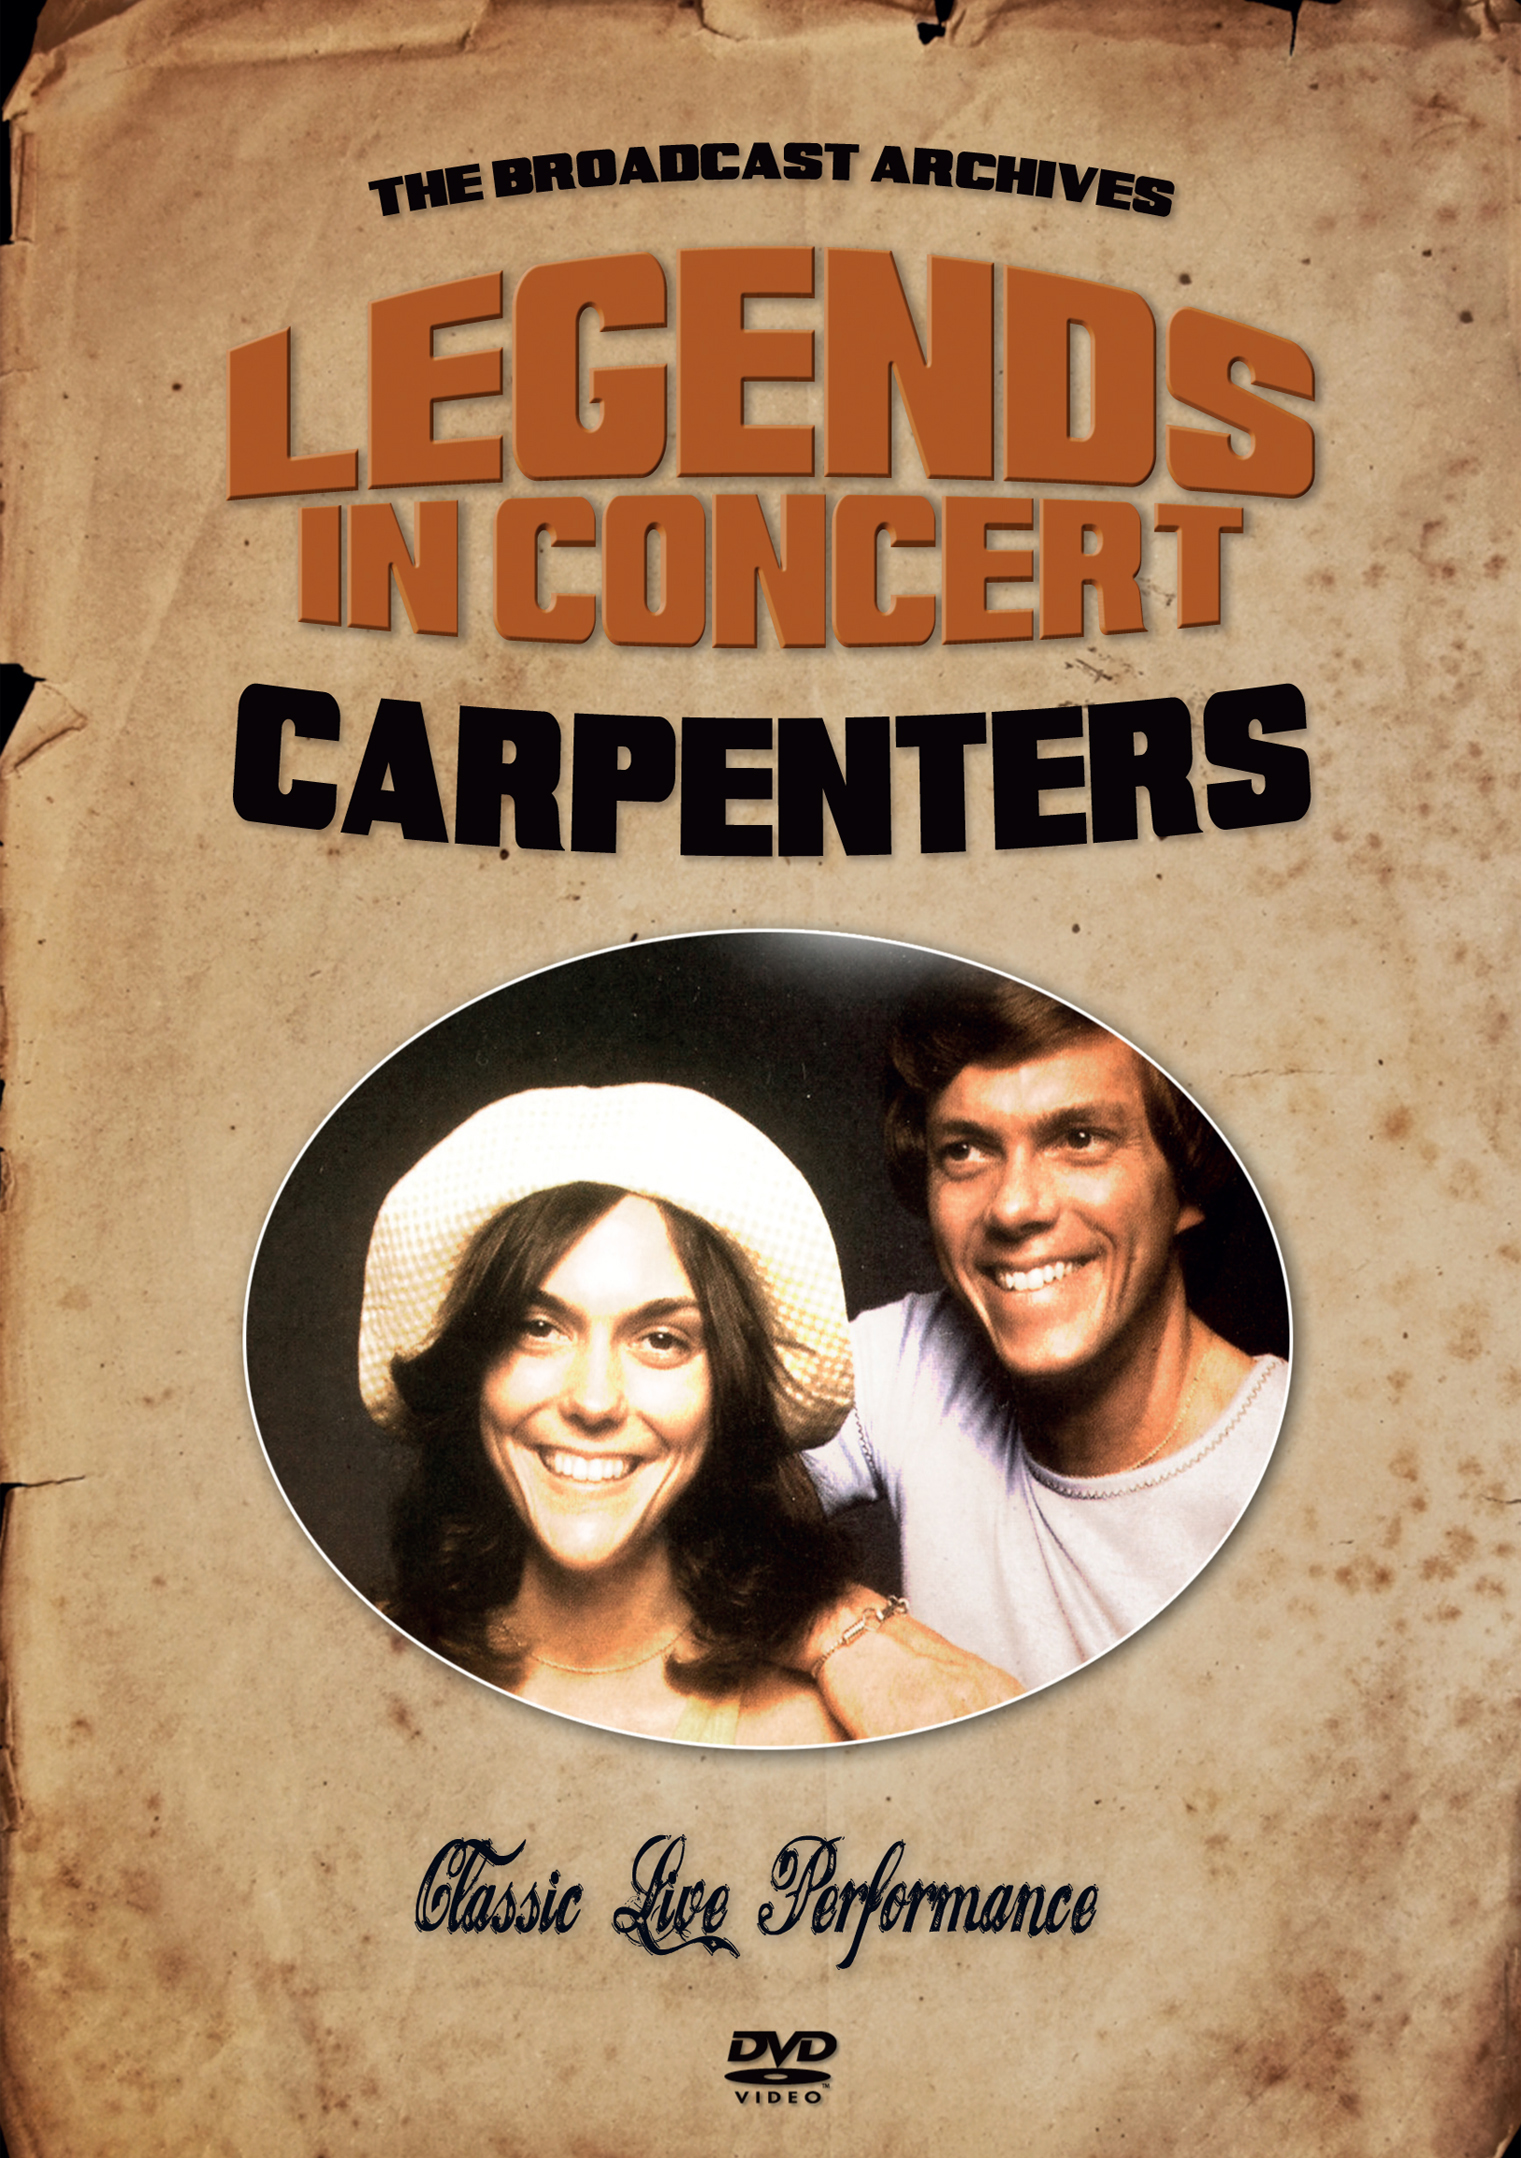 The Carpenters: Legends in Concert